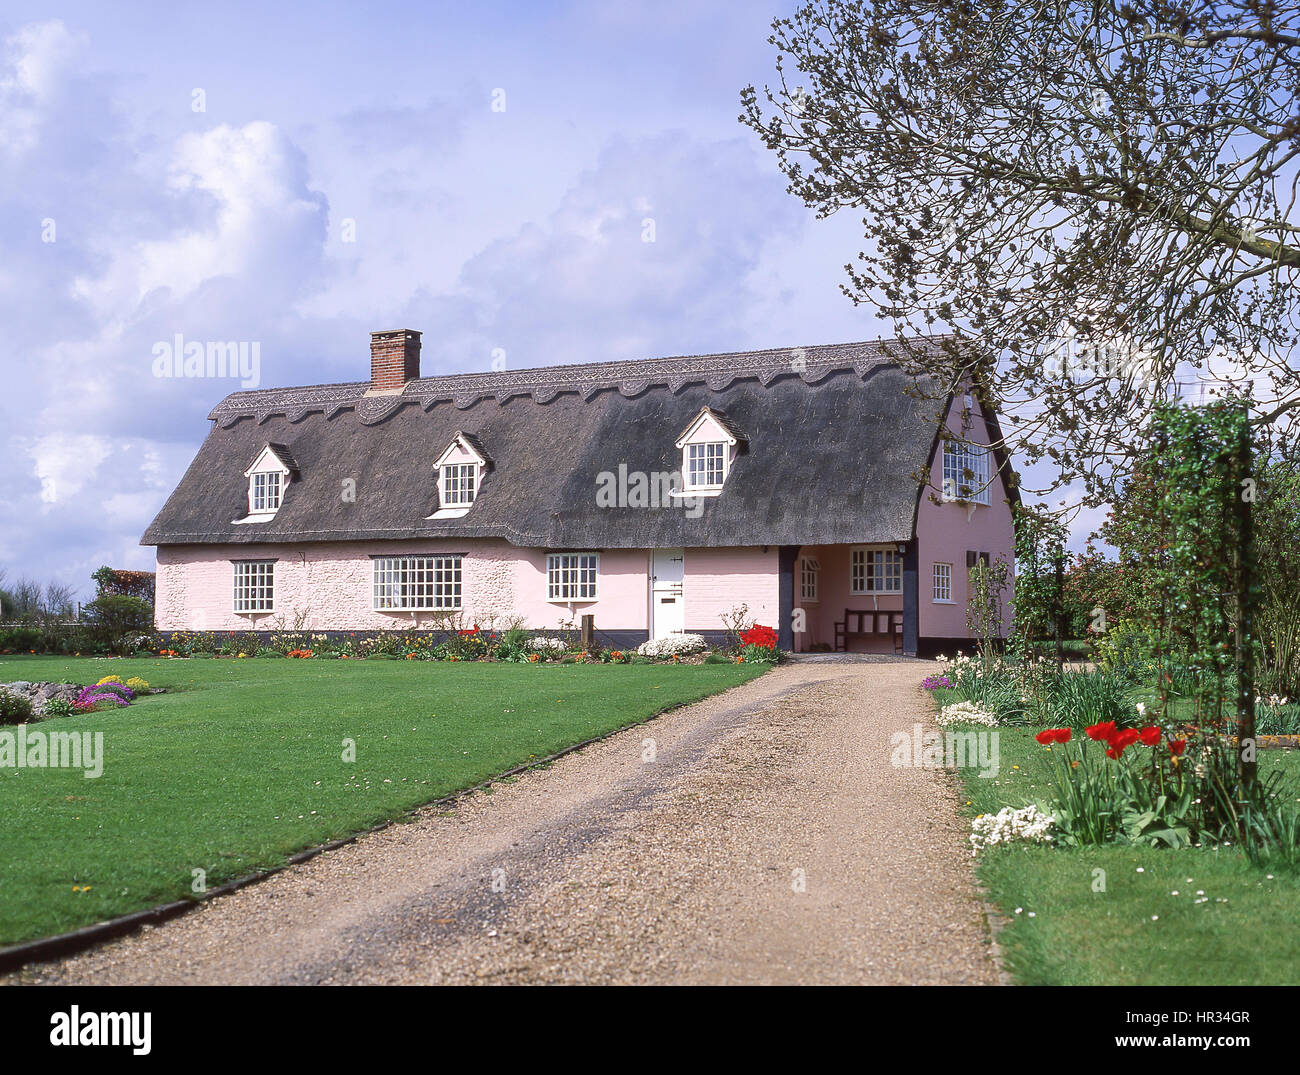 Thatched cottage, Ousten, Suffolk, England, United Kingdom - Stock Image